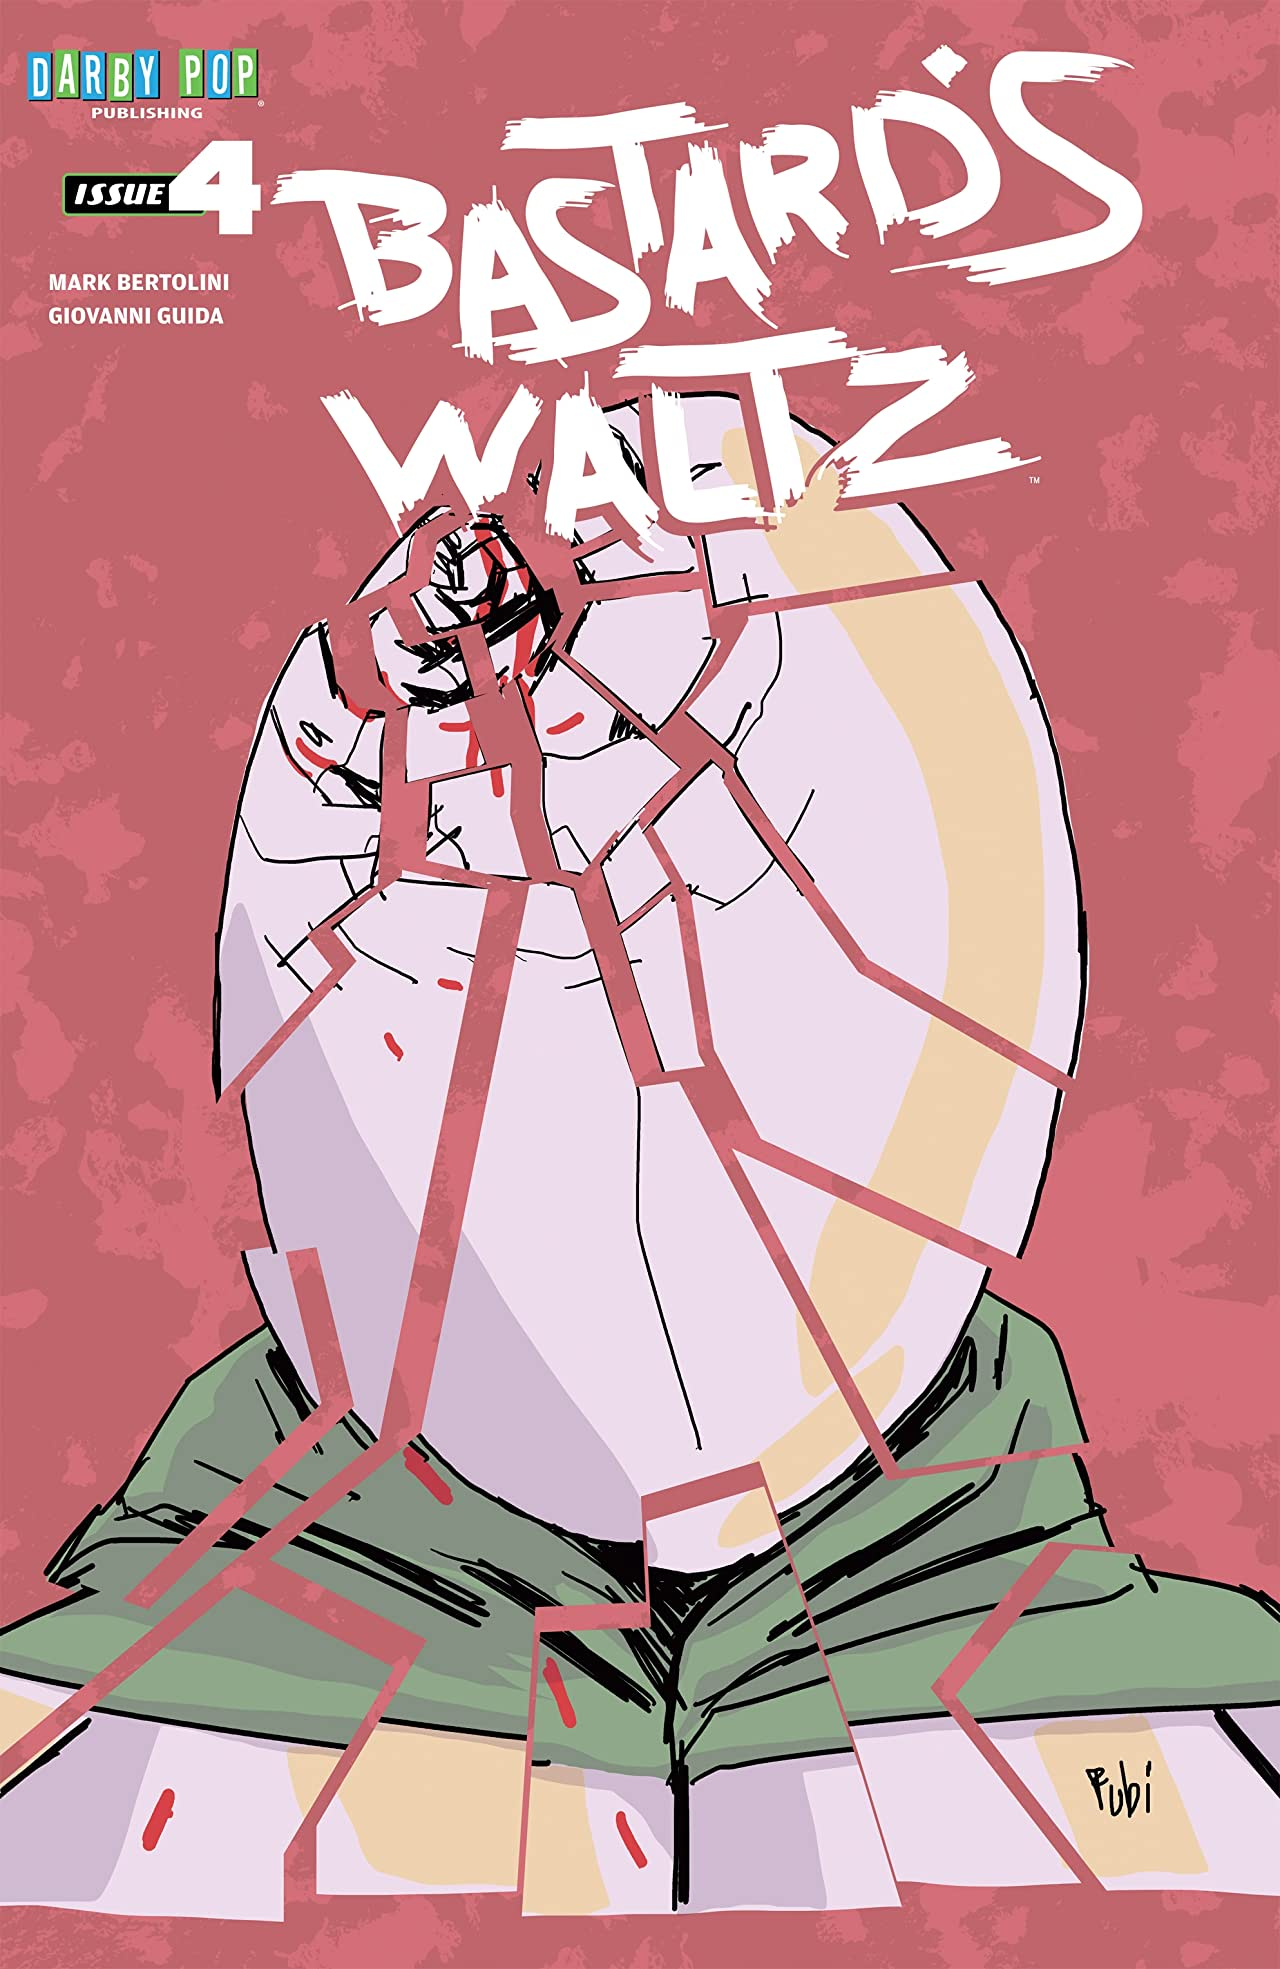 Bastard's Waltz #4: Sleep Tight